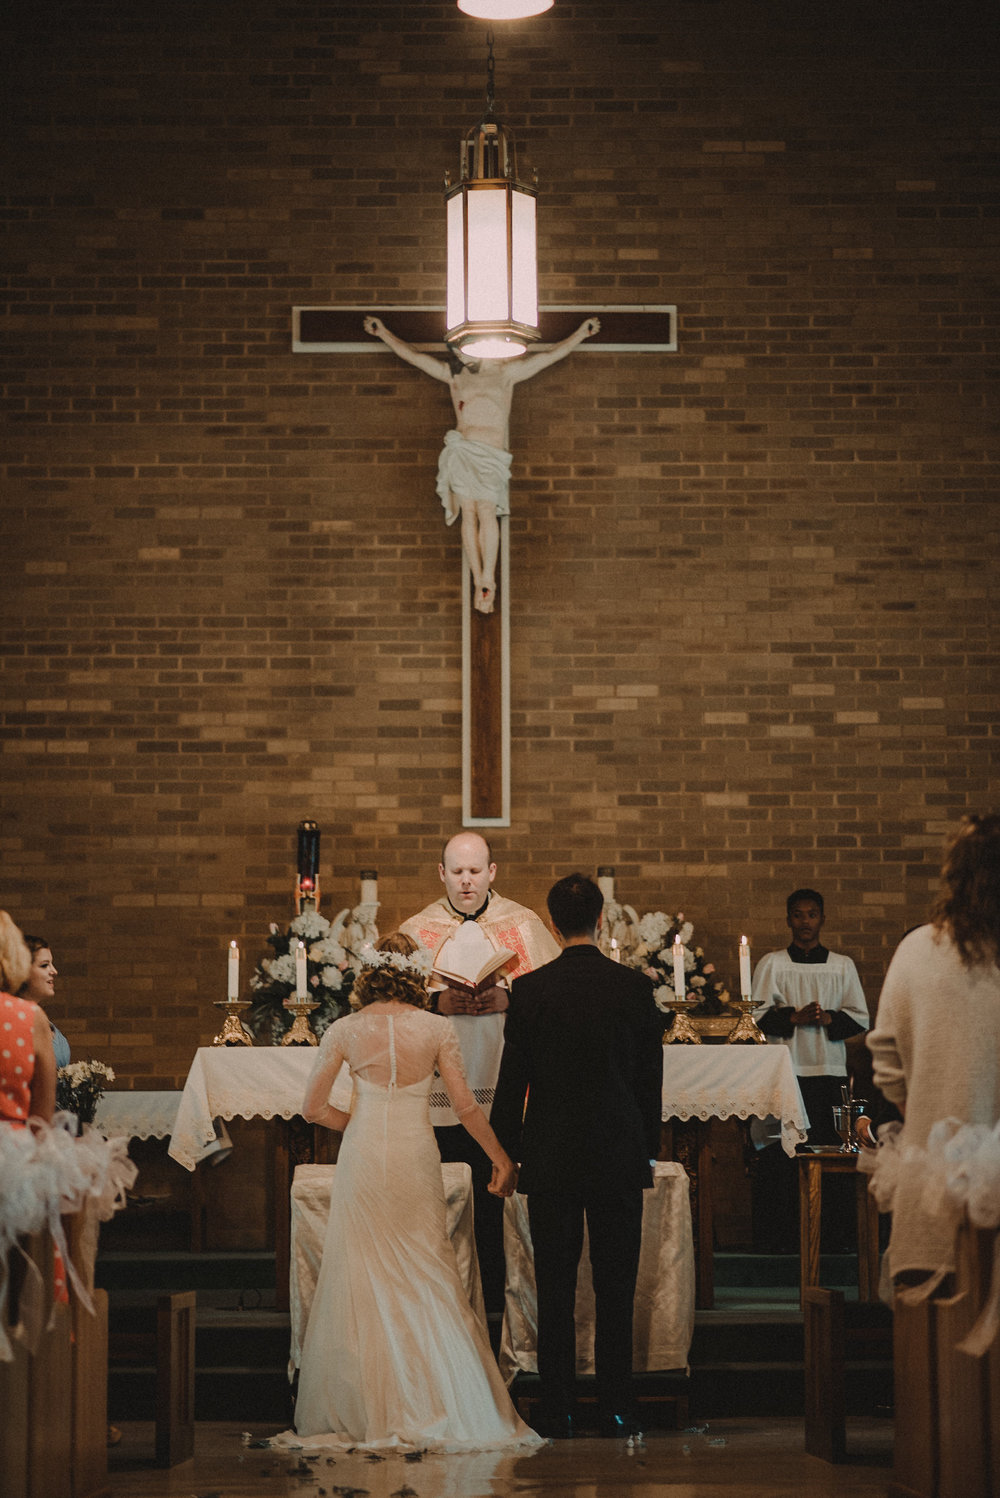 Bride and groom at altar during wedding